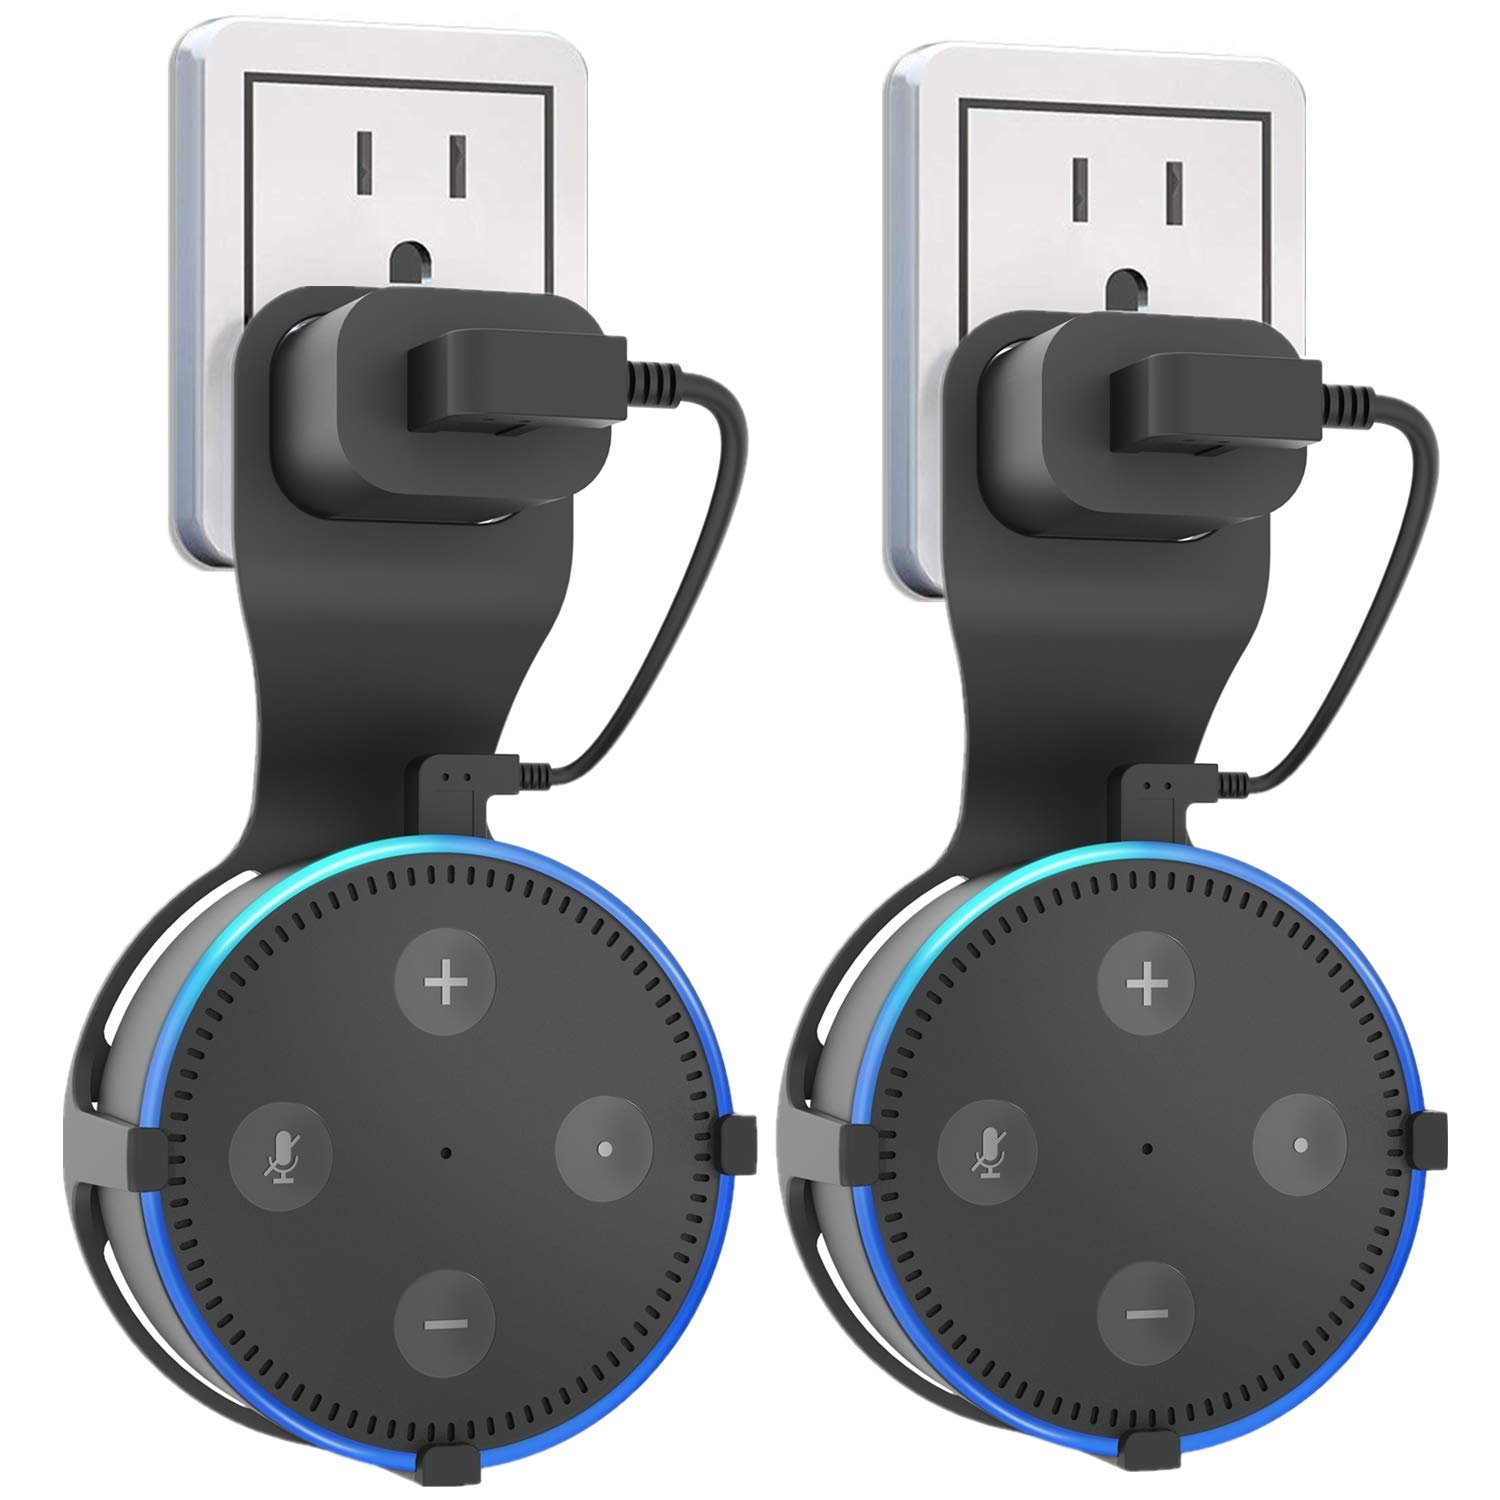 2pcs Black Outlet Wall Mount Hanger Stands Accessories A Space-Saving Solution for Your Smart Home Speakers Without Messy Wires or Screws Dot Kids Edition Huishang Holder for Dot 2 2nd Generation